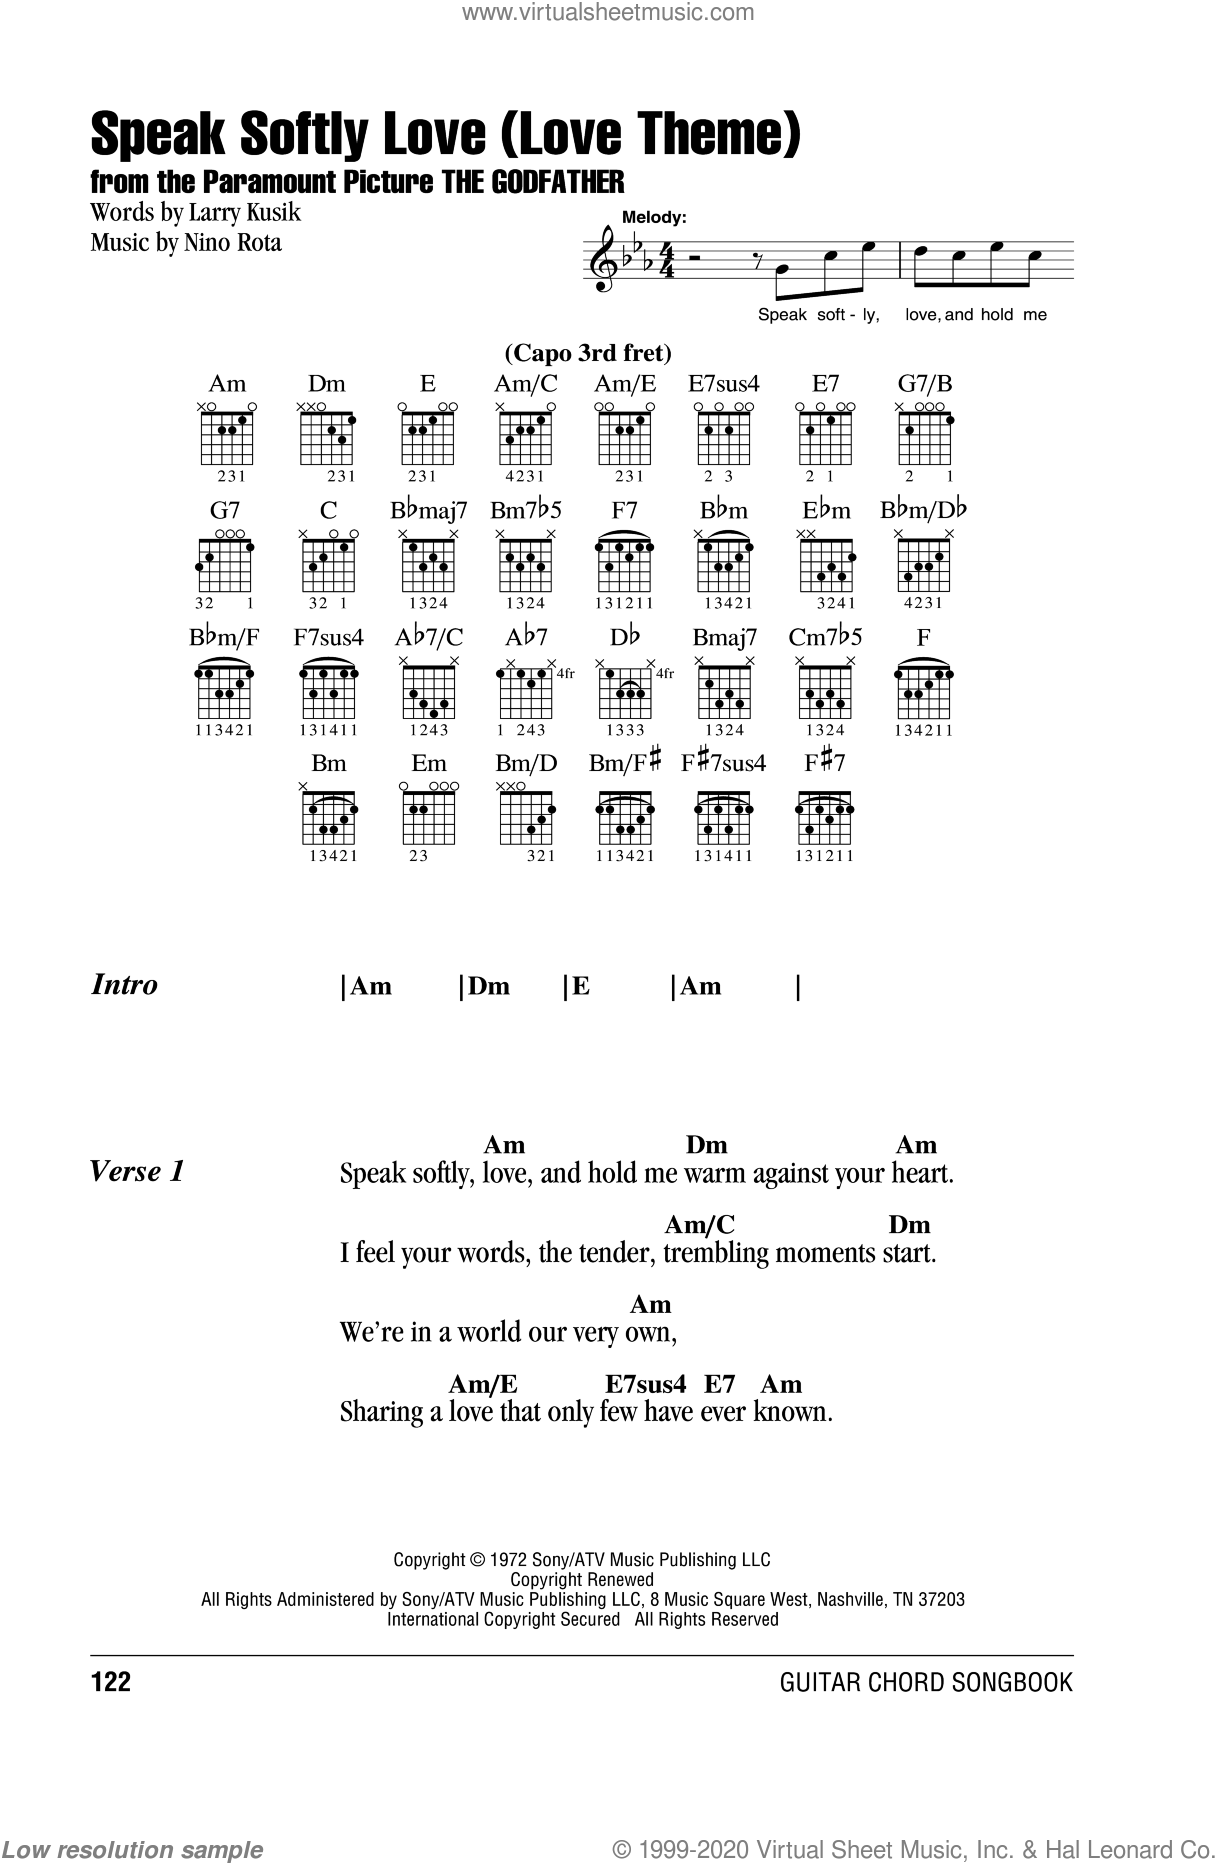 Speak Softly, Love (Love Theme) sheet music for guitar (chords) by Andy Williams, Larry Kusik and Nino Rota, intermediate